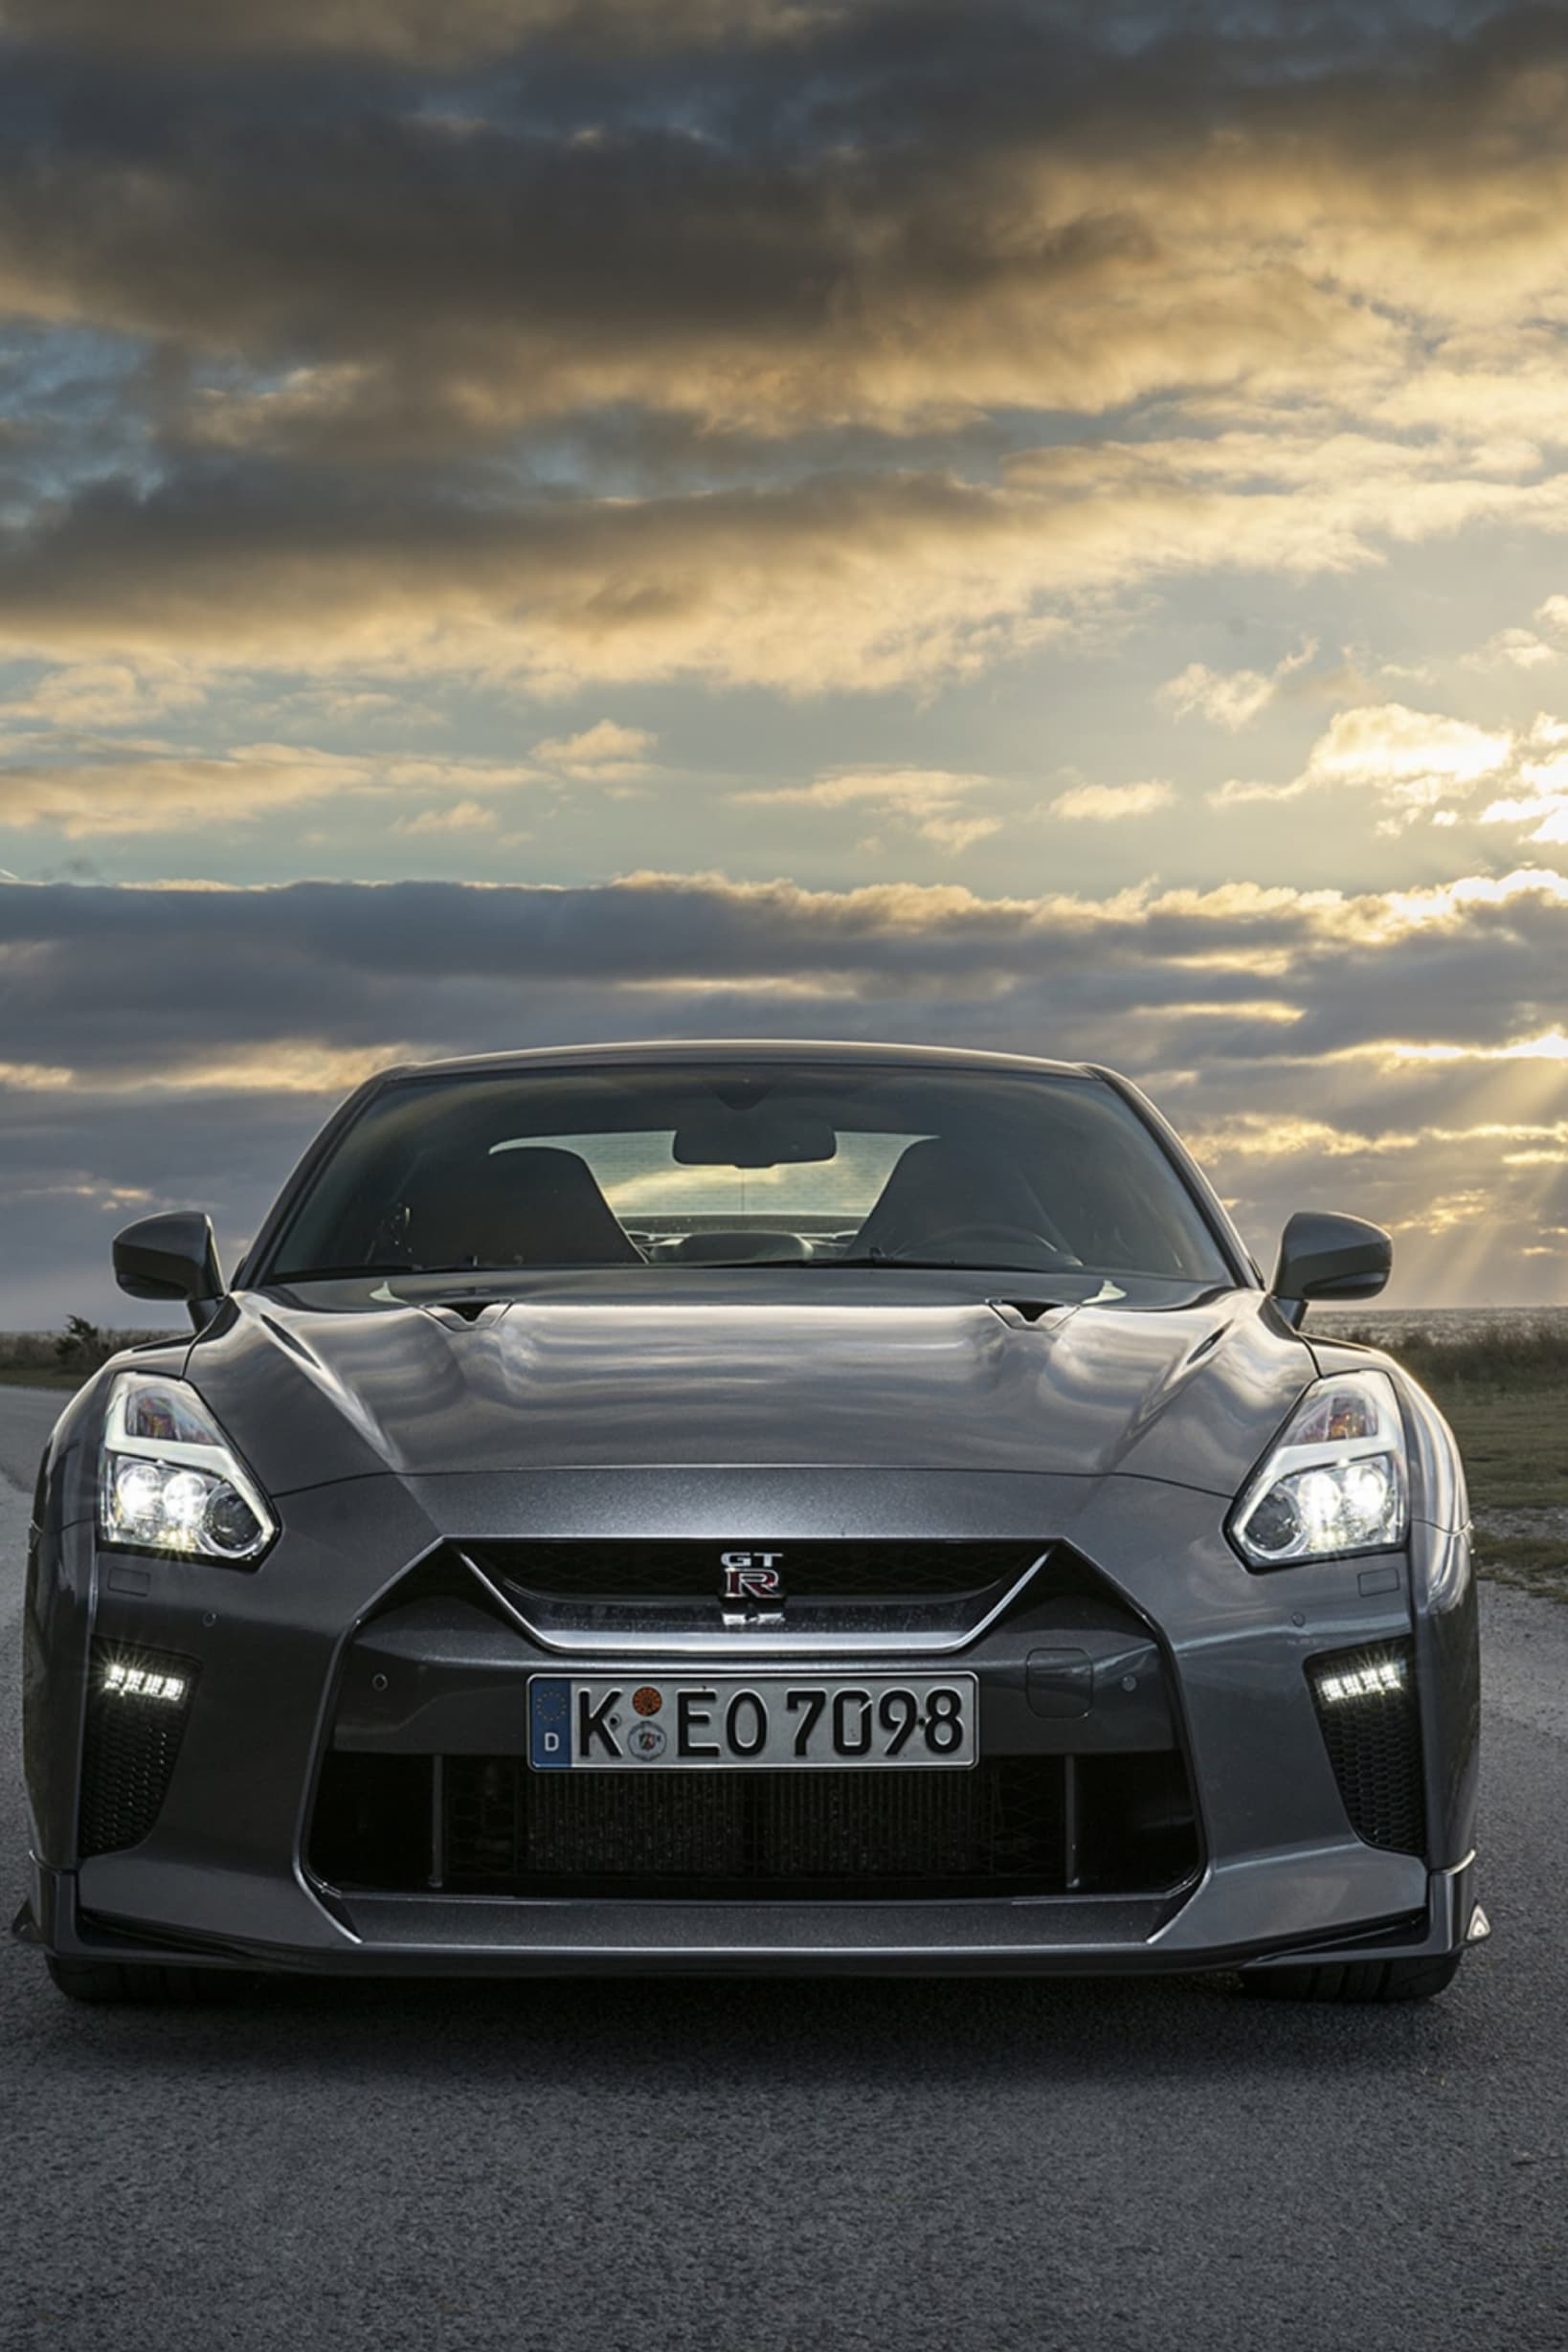 If you see this front of the rear view mirror, you might as well move over. A few cars can match the Nissan GT R when it comes to acceleration and speed.